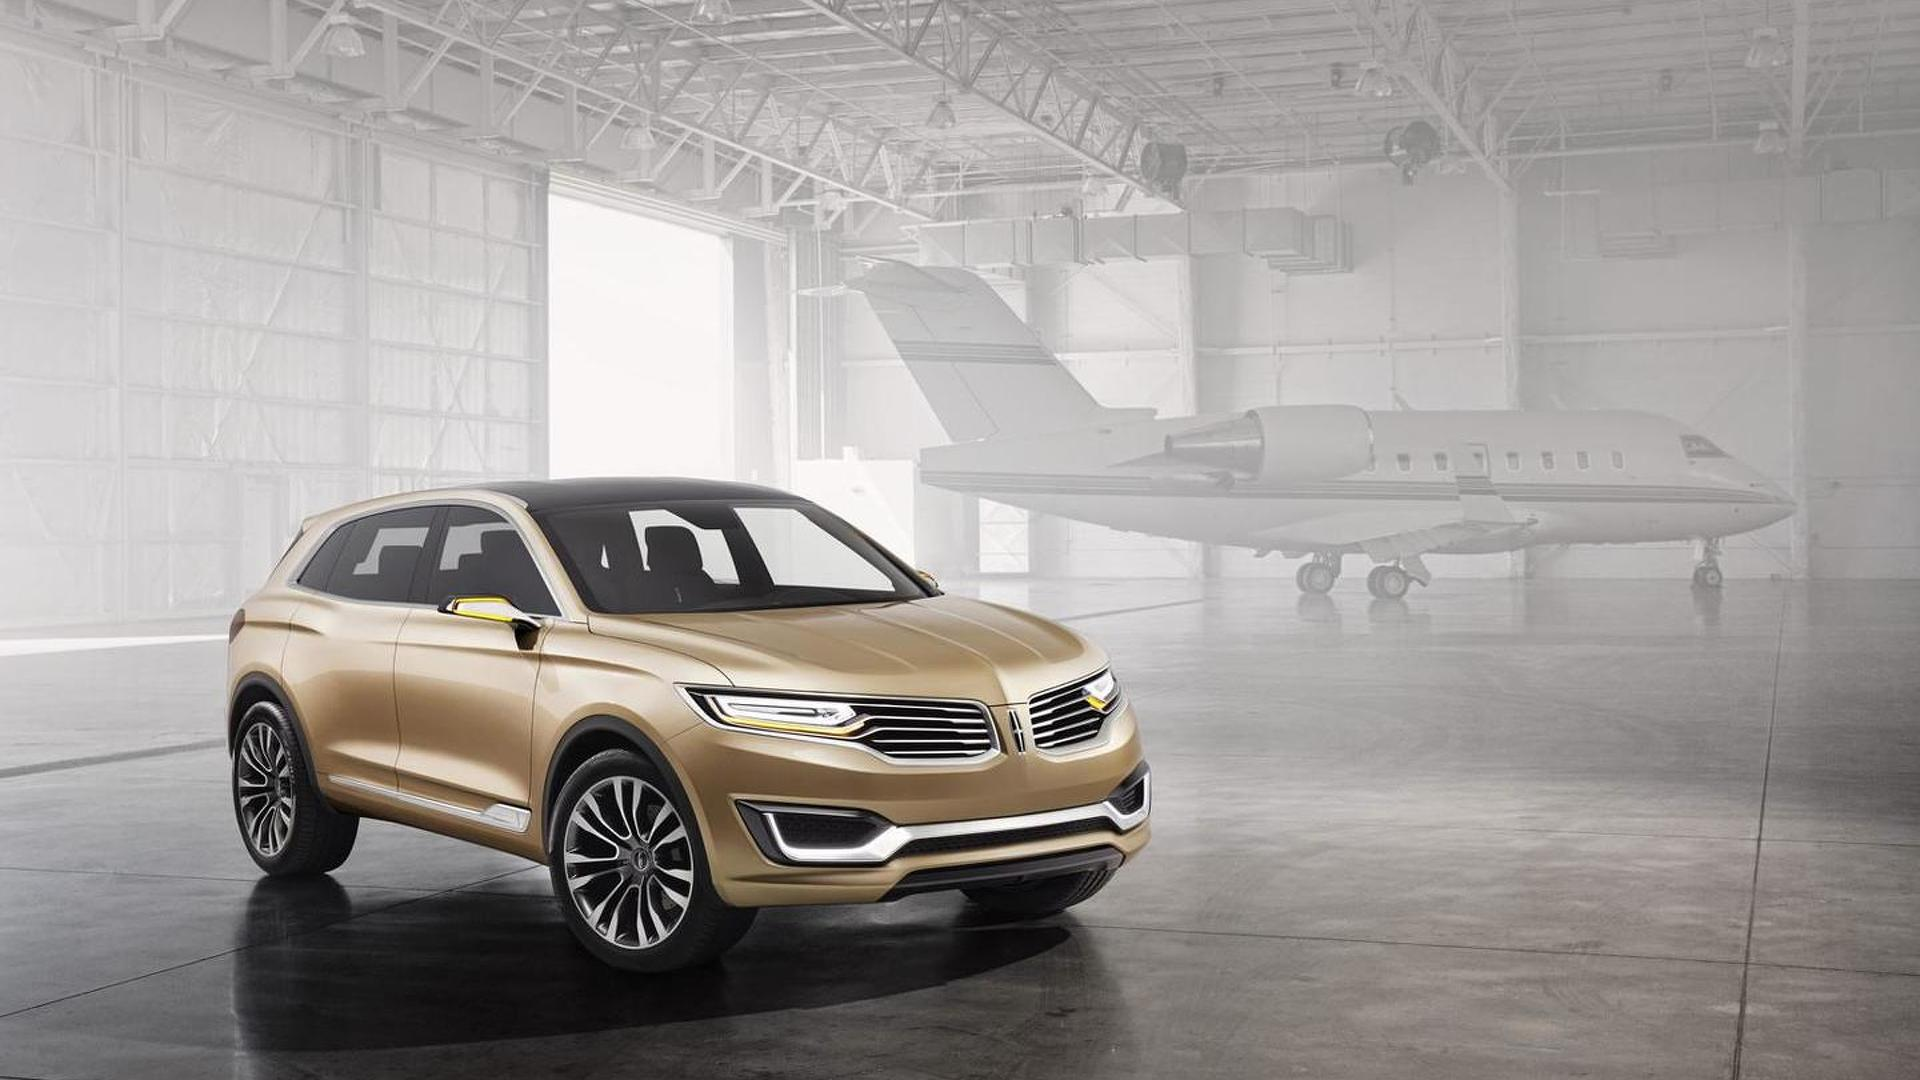 Lincoln MKX Concept unveiled in Beijing, preview new global production SUV [video]